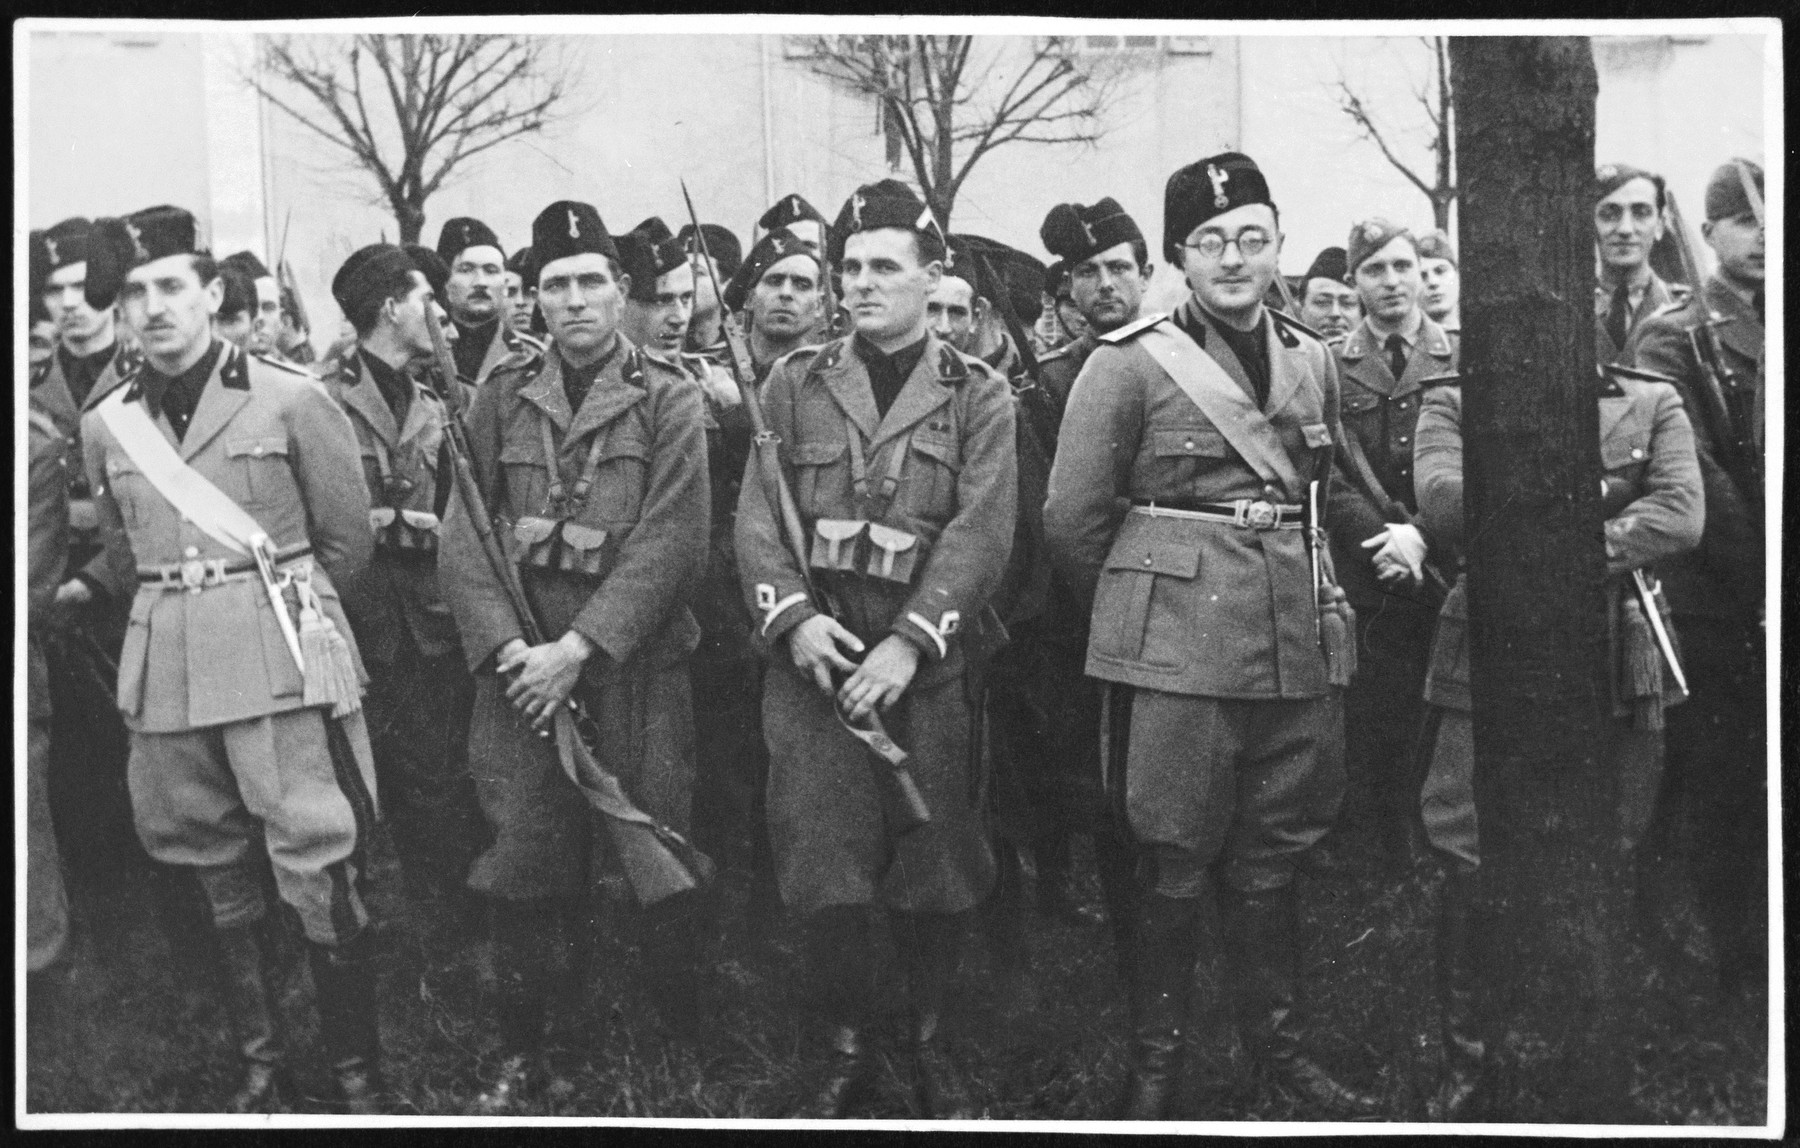 Group portrait of Italian Fascists in Pisa.  Ettore Abenaim (right, b. 1909) enlisted in the Voluntary Fascist Militia when Jews were still permitted to belong.  He later was later deported to Auschwitz and perished.